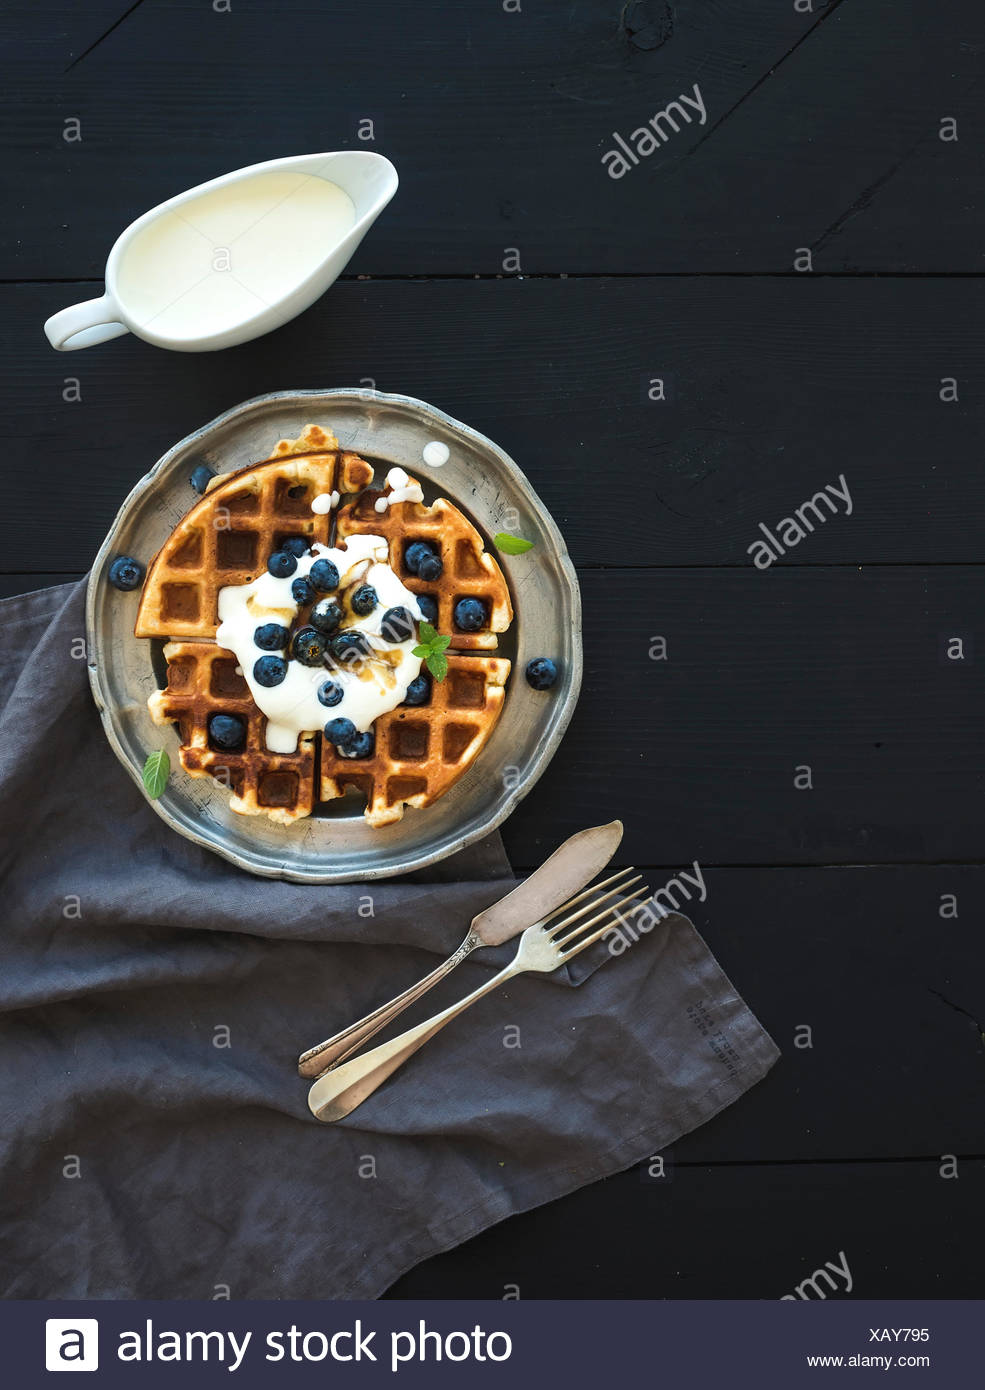 Soft Belgian waffles with blueberries, honey and whipped cream on vintage metal plate over black wooden background, top view, co - Stock Image